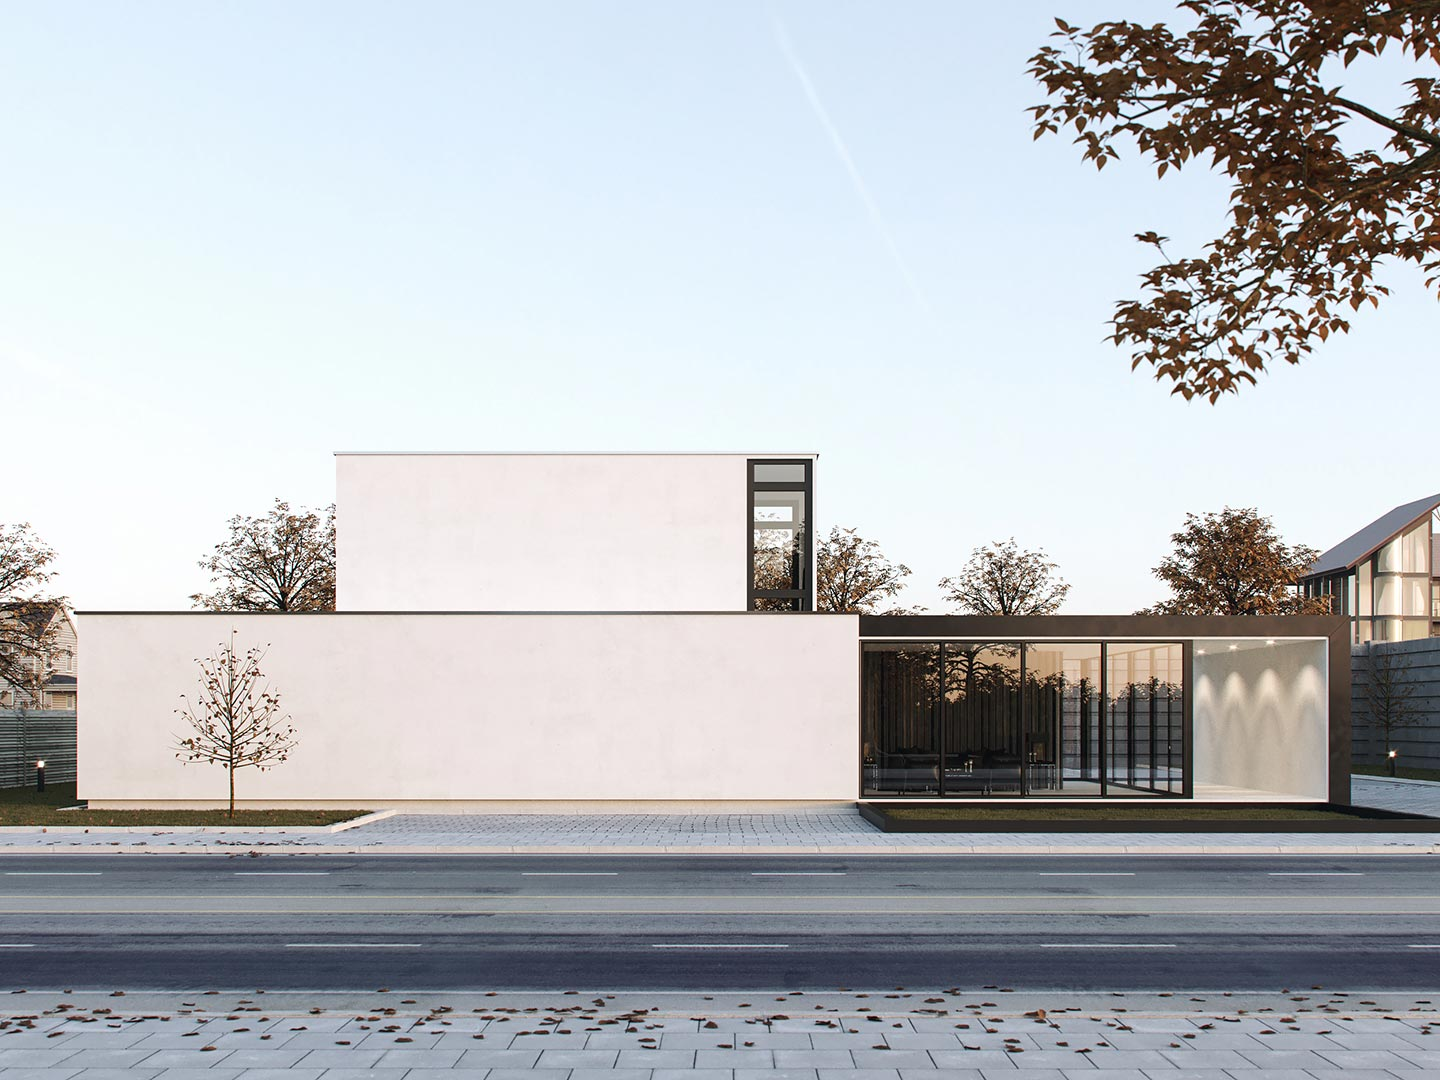 3d_Architektur_Visualisierung